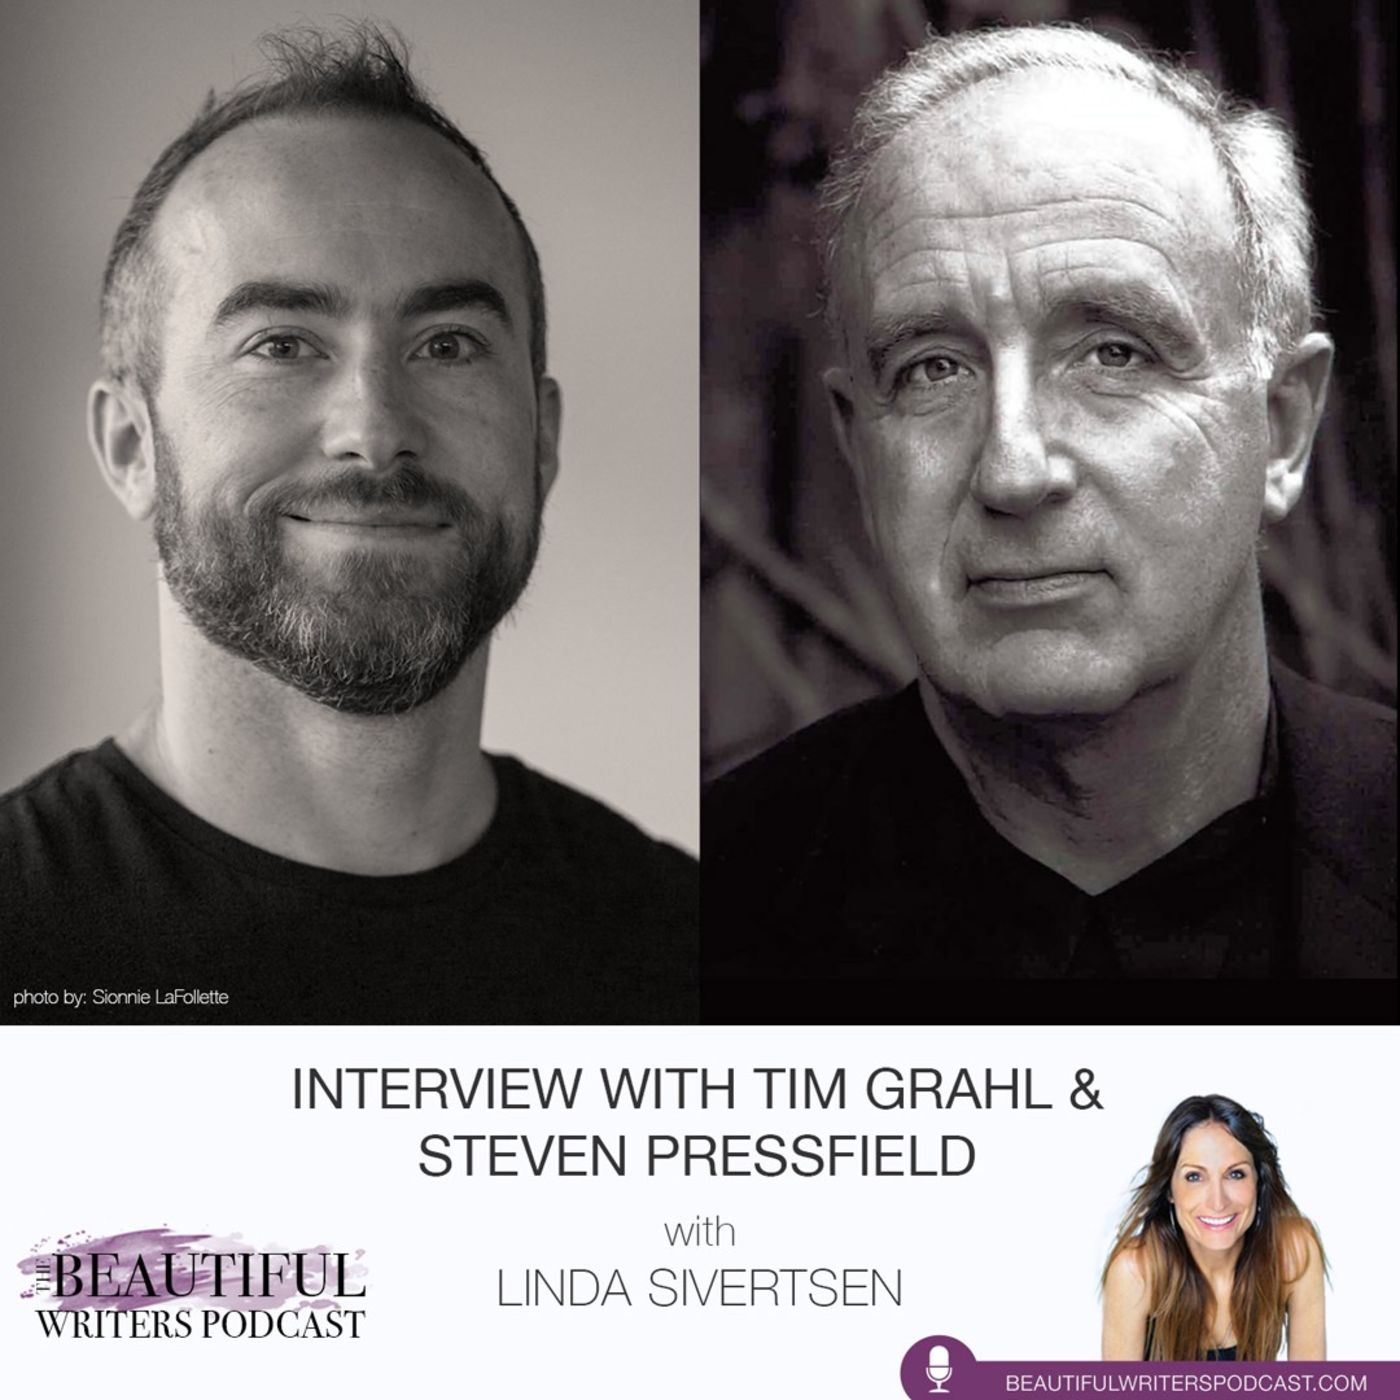 Steven Pressfield & Tim Grahl: Slaying Creative Dragons